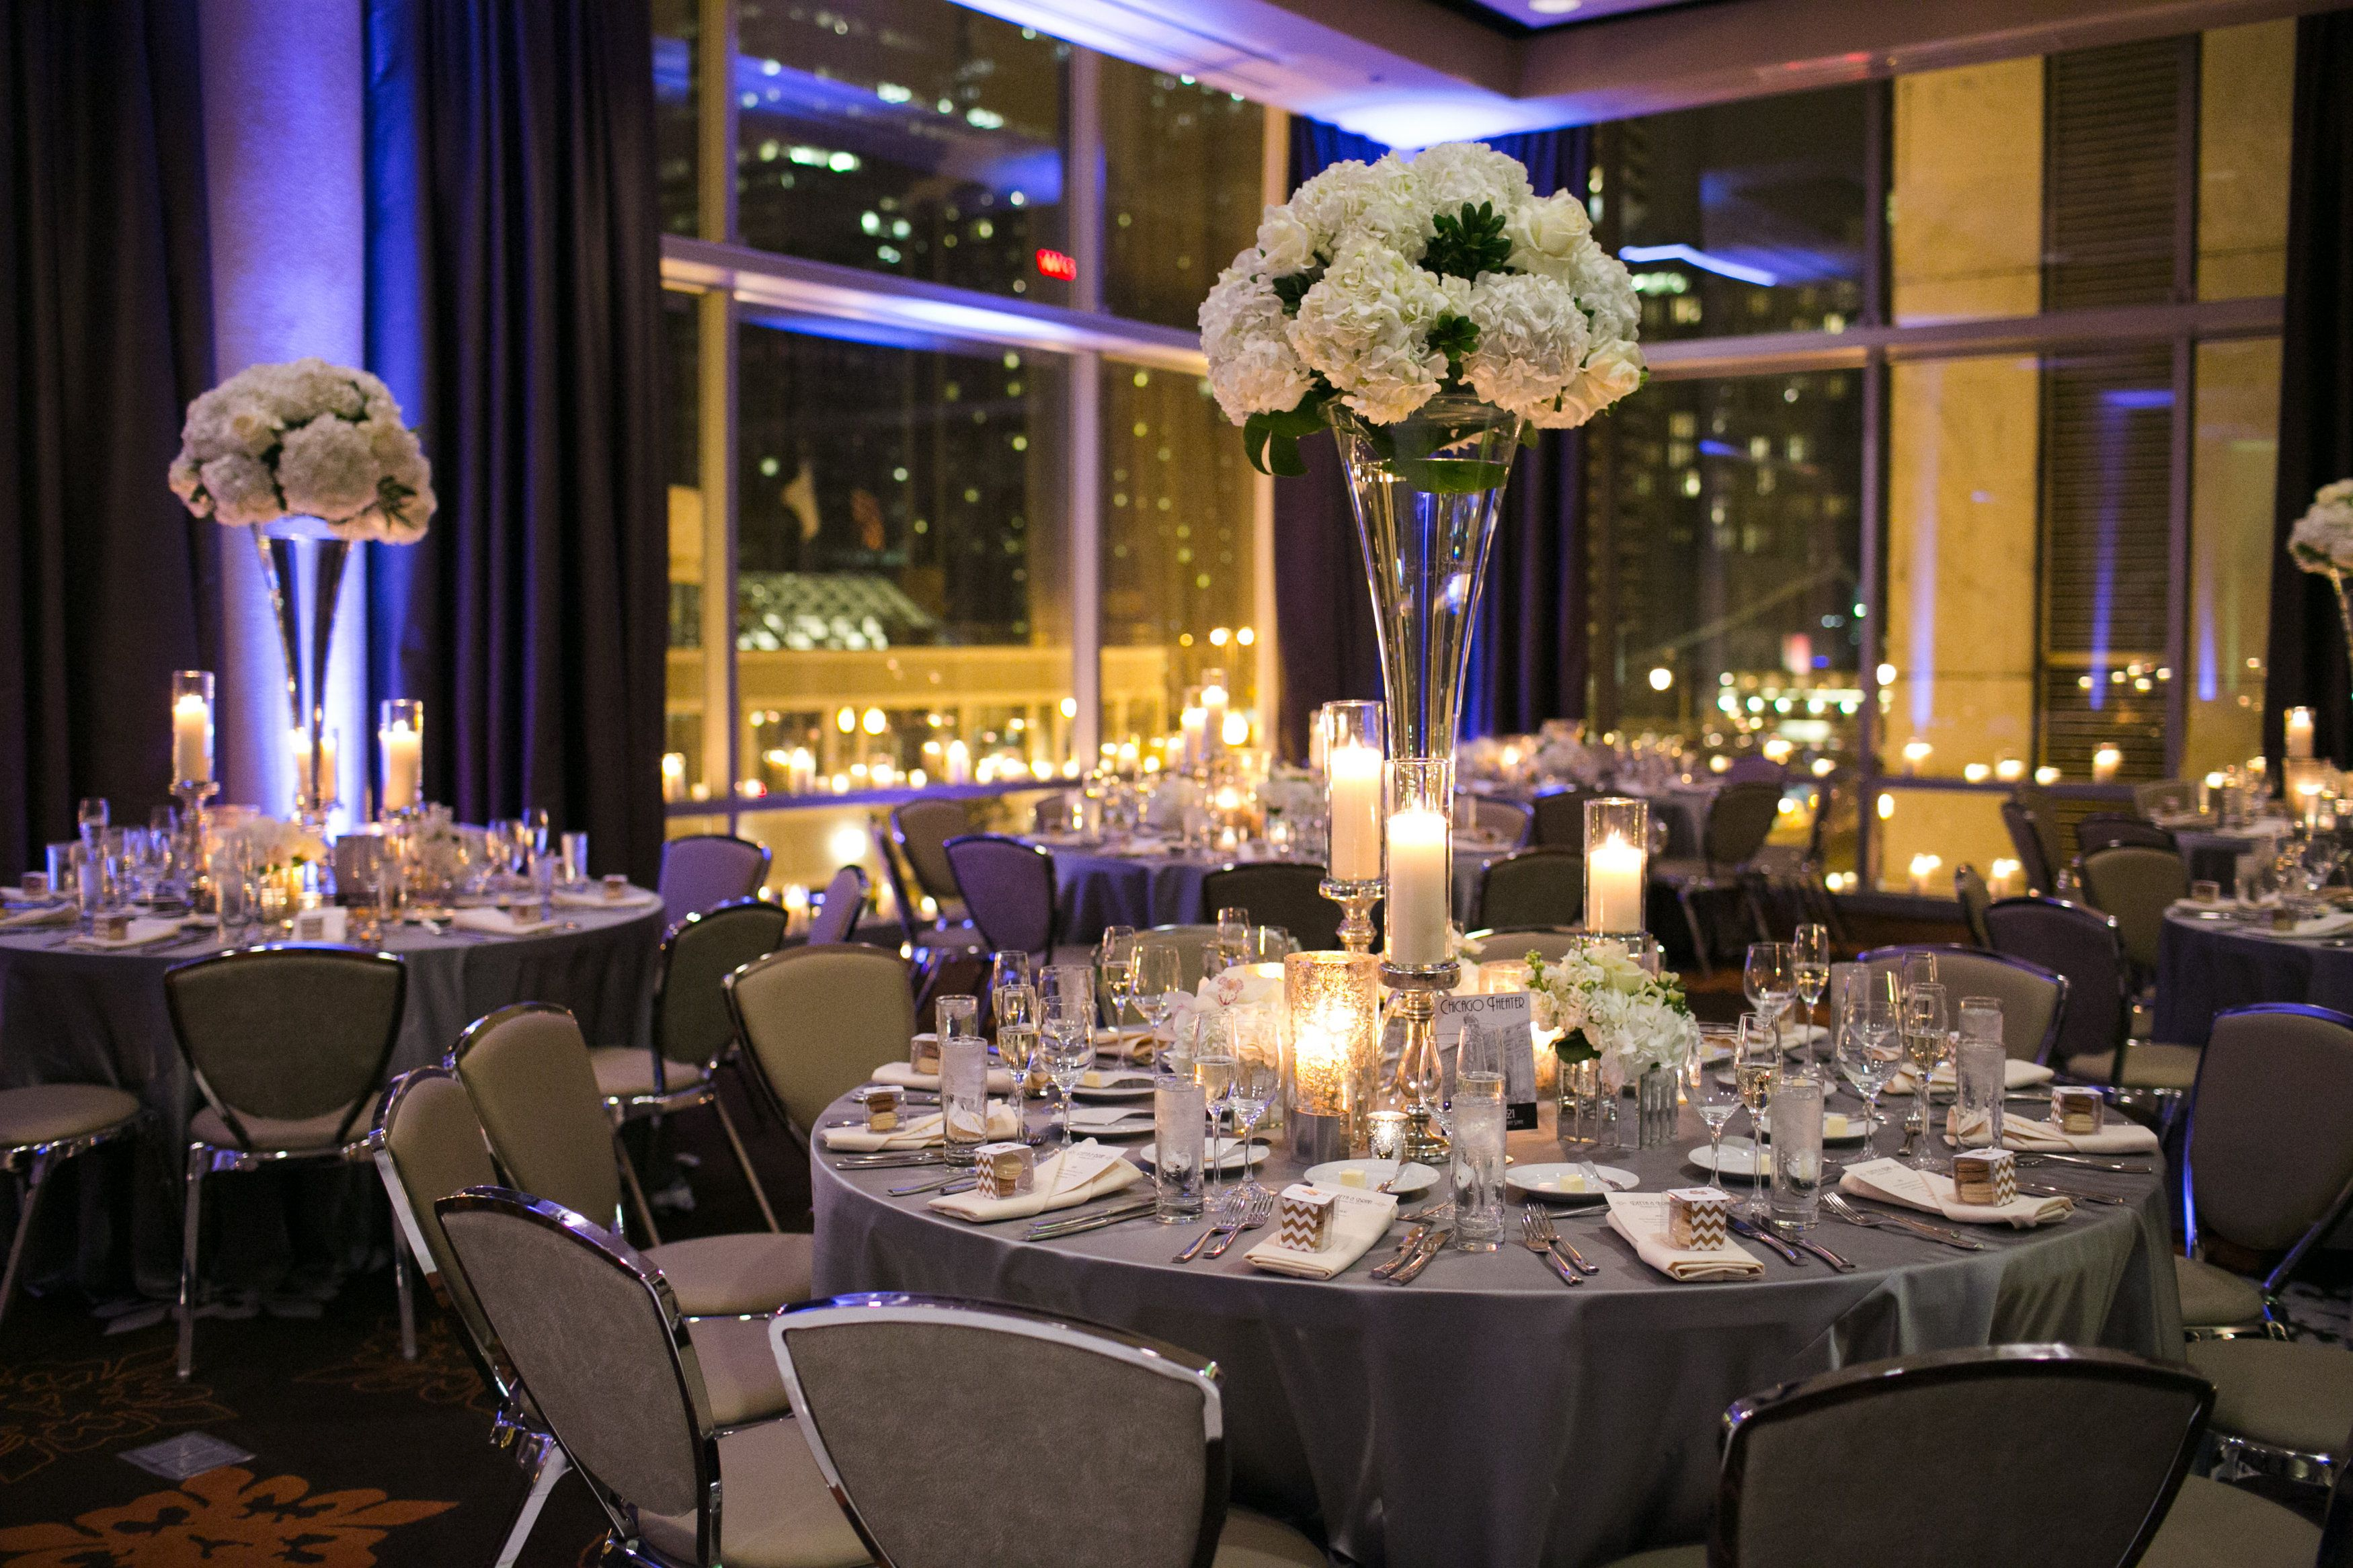 Wedding reception at the Wit Hotel. Photo by Christy